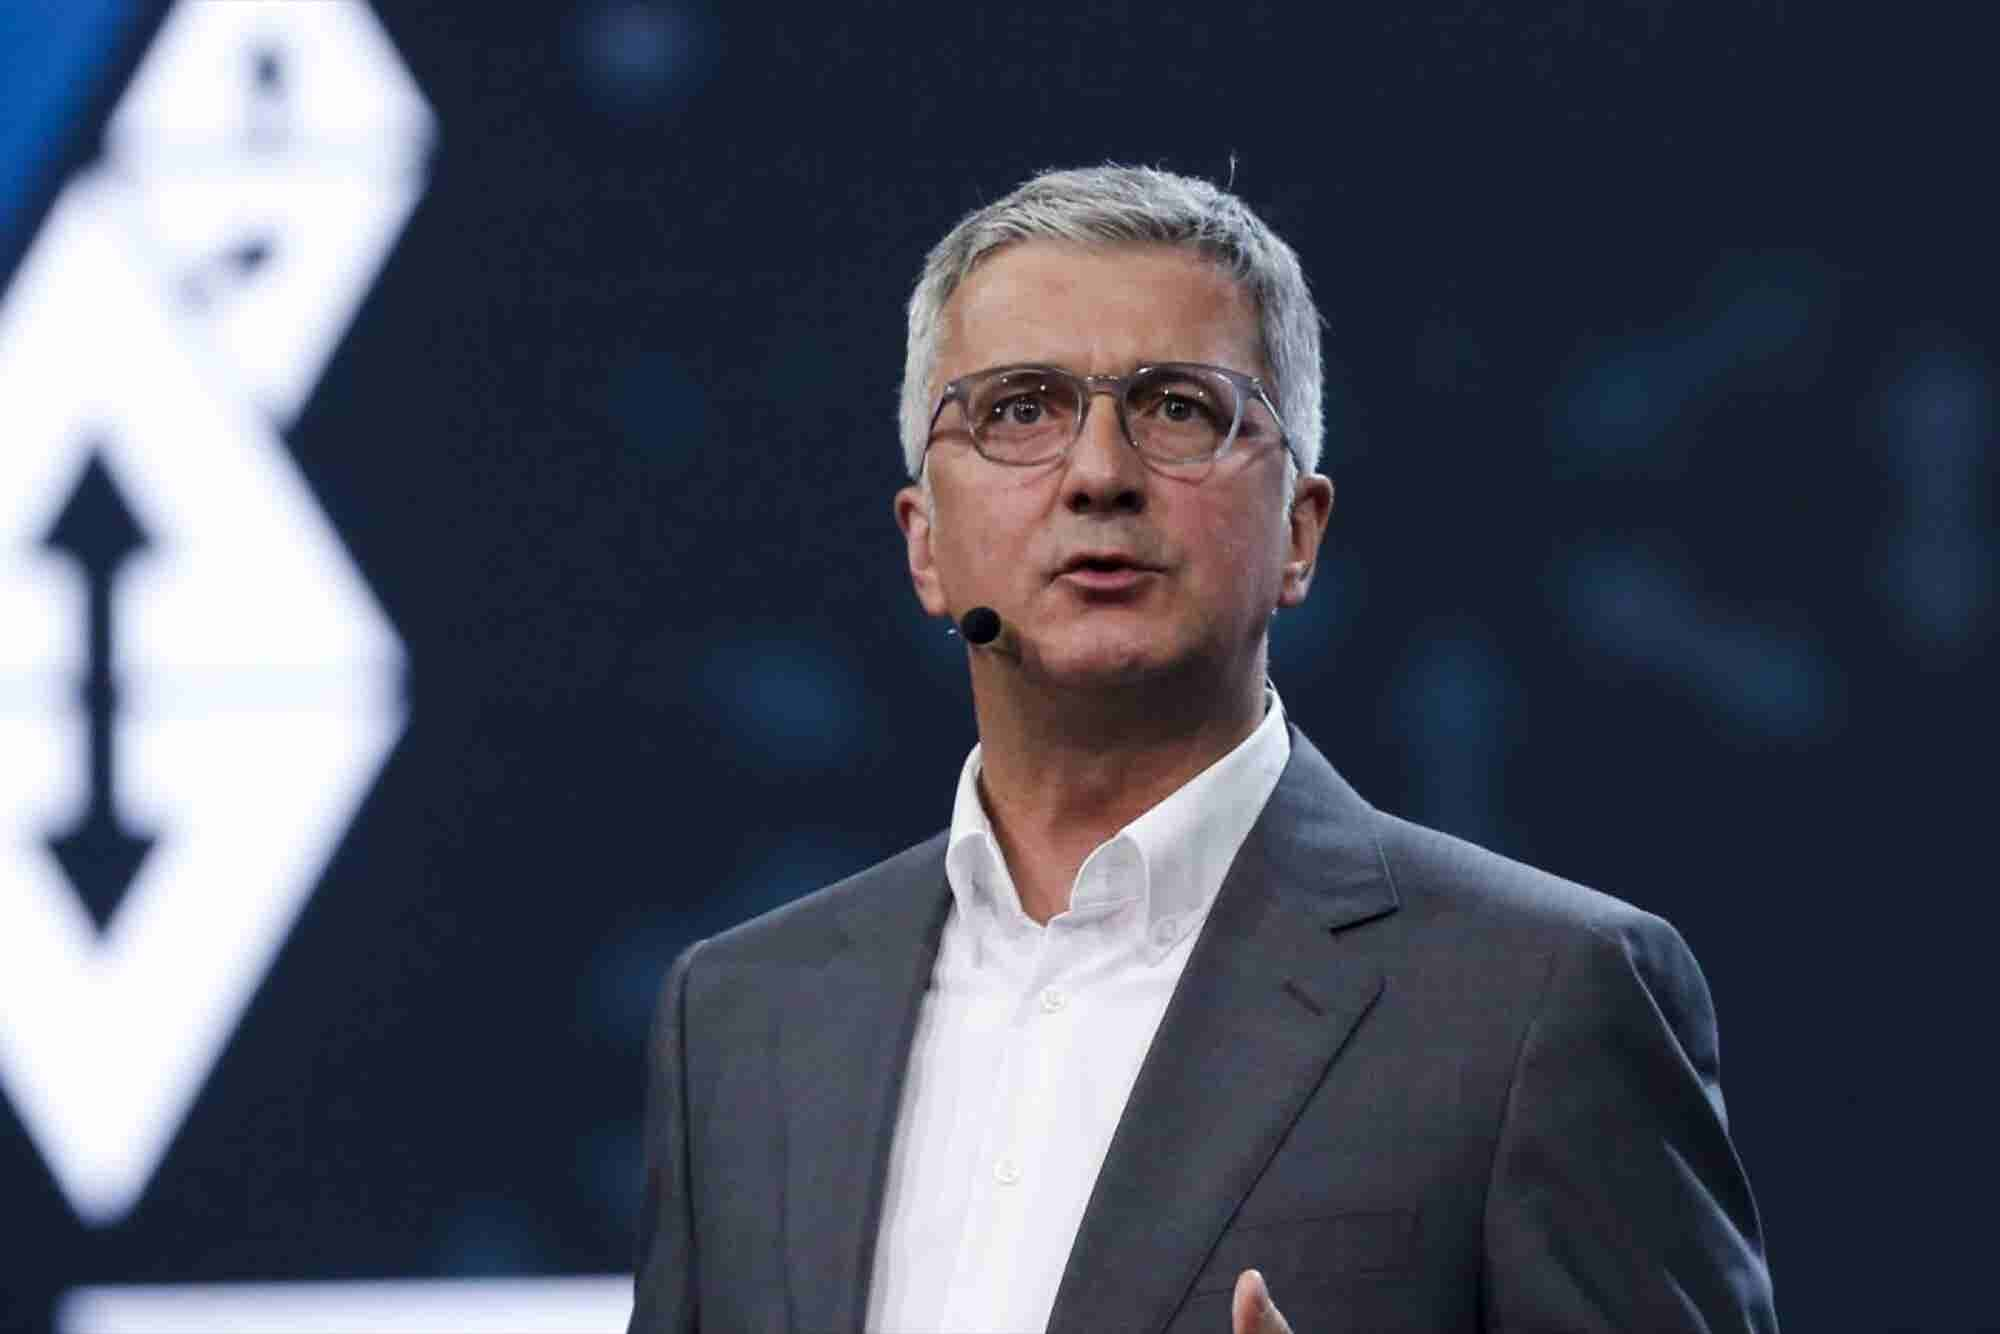 Audi CEO, Rupert Stadler, Arrested in Germany for Potential Evidence Tampering